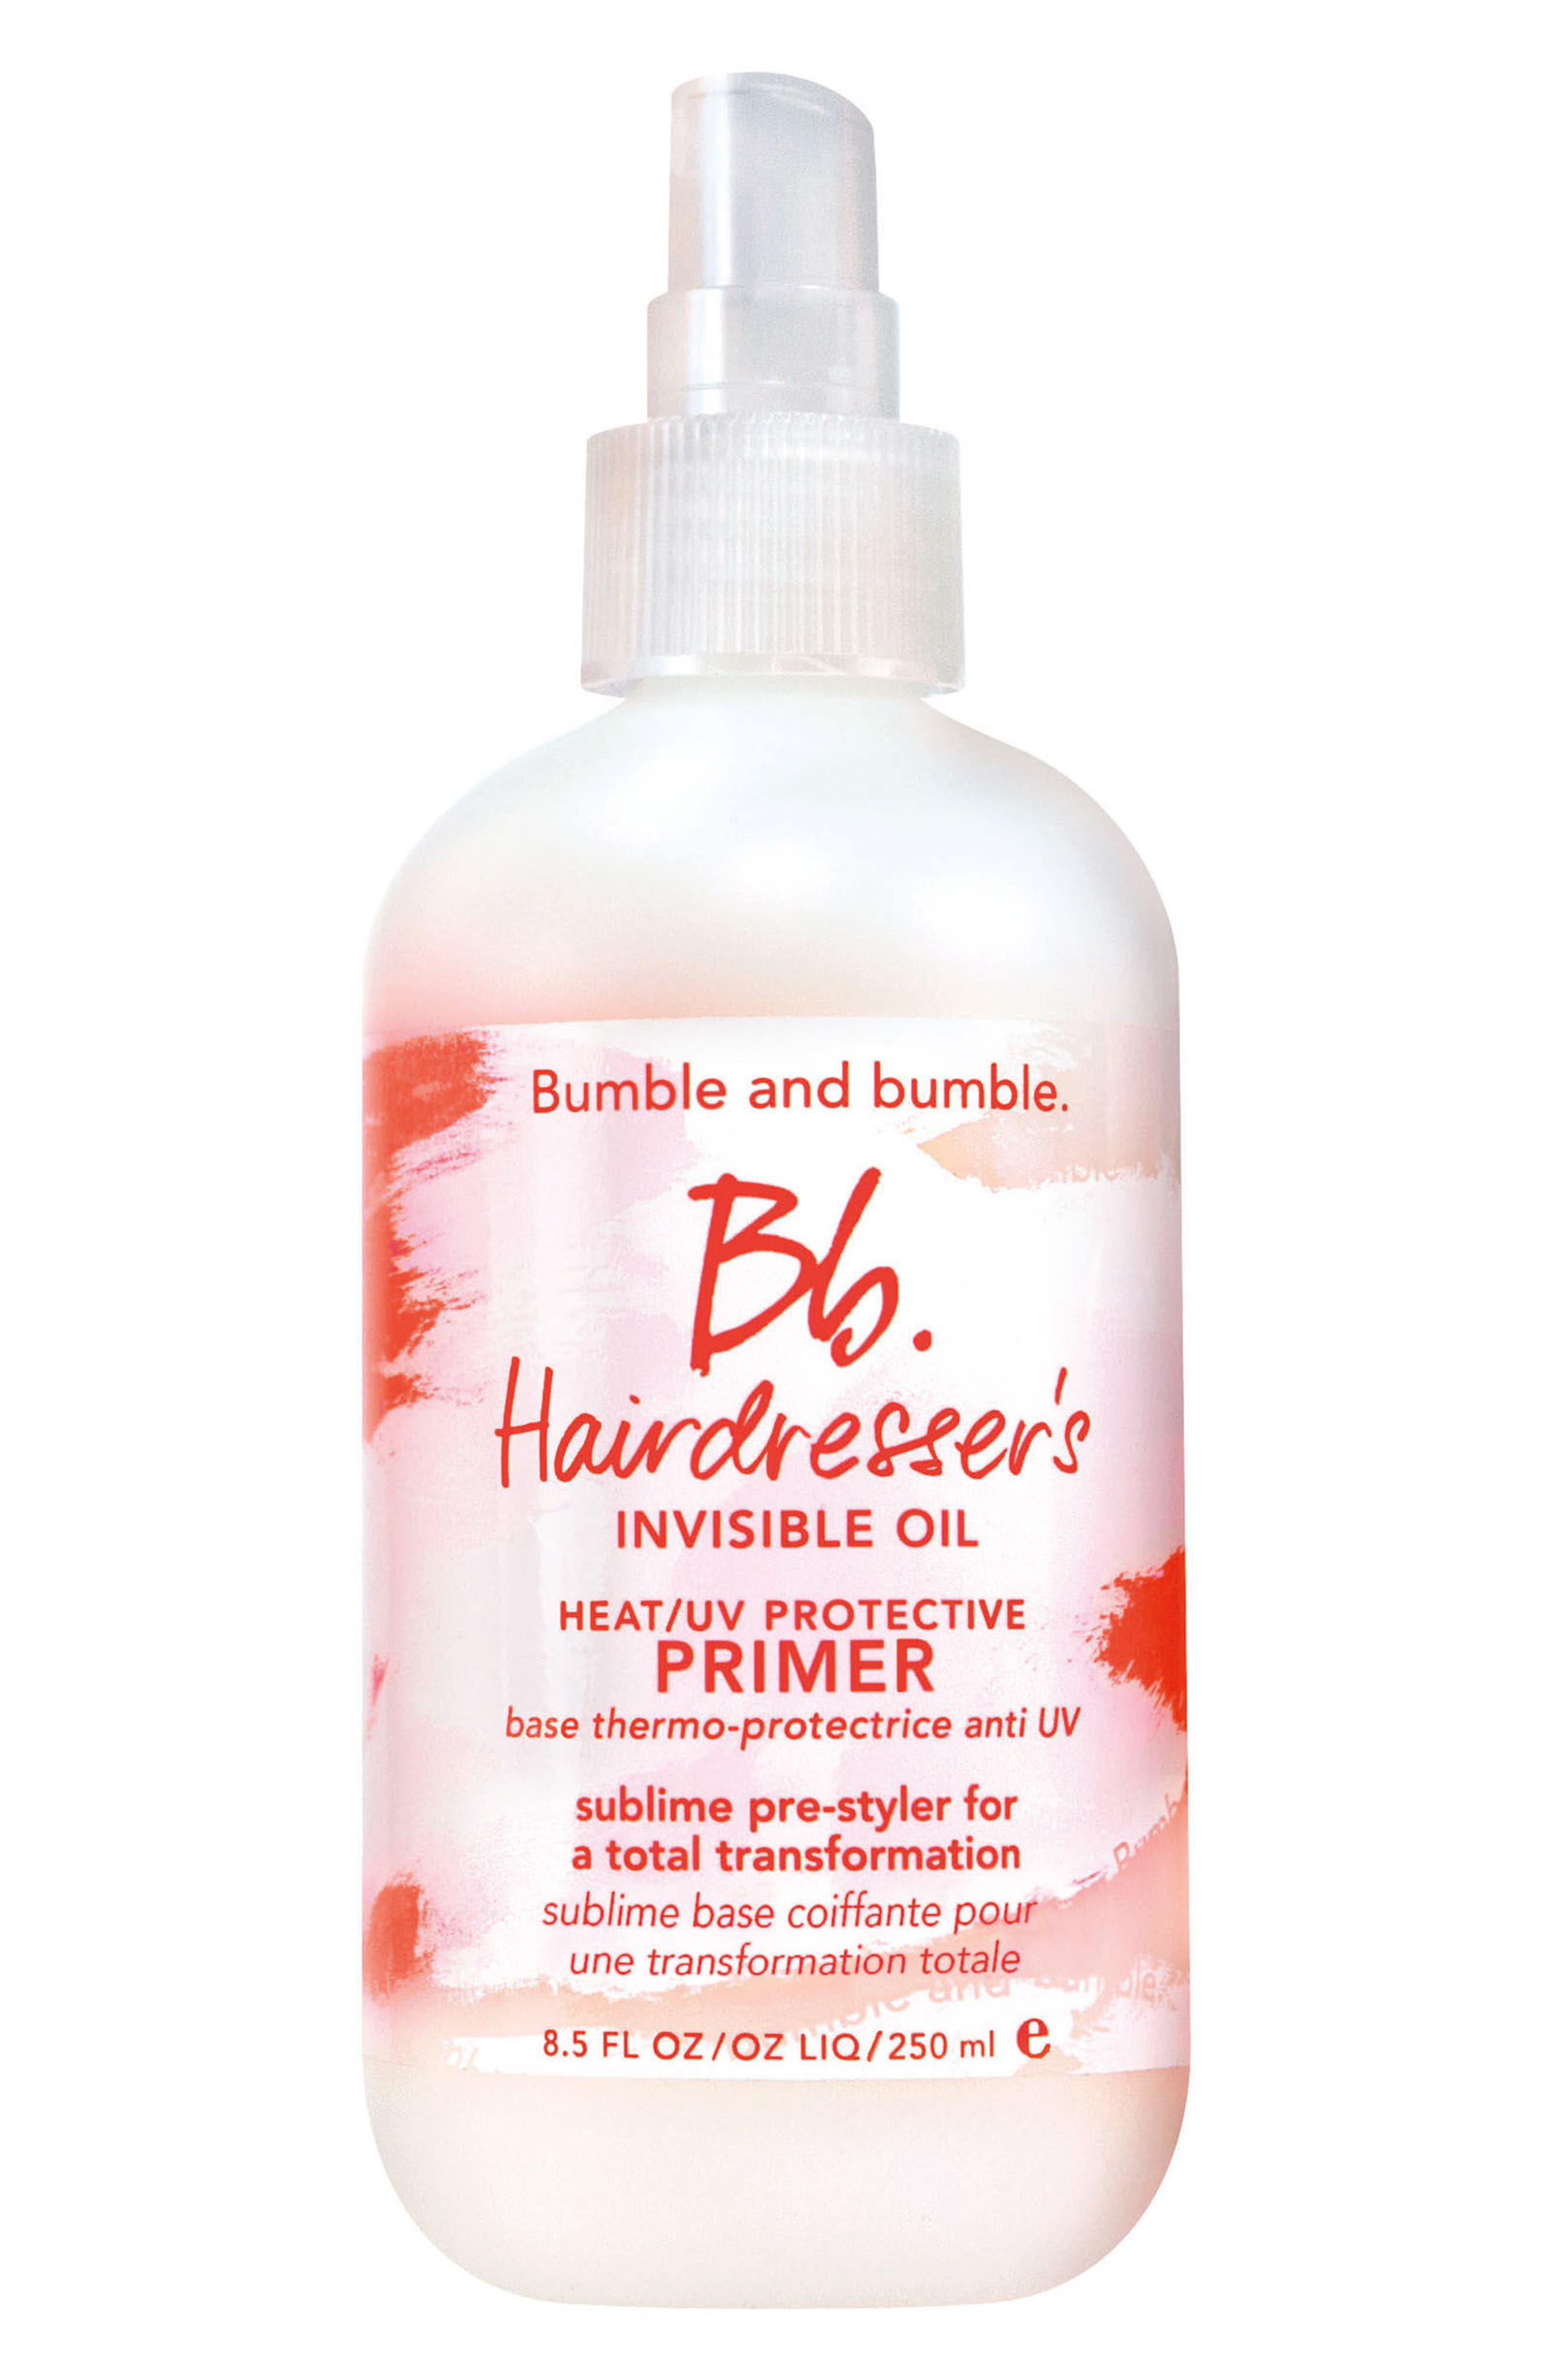 Main Image - Bumble and bumble Hairdresser's Invisible Oil Heat/UV Protective Primer